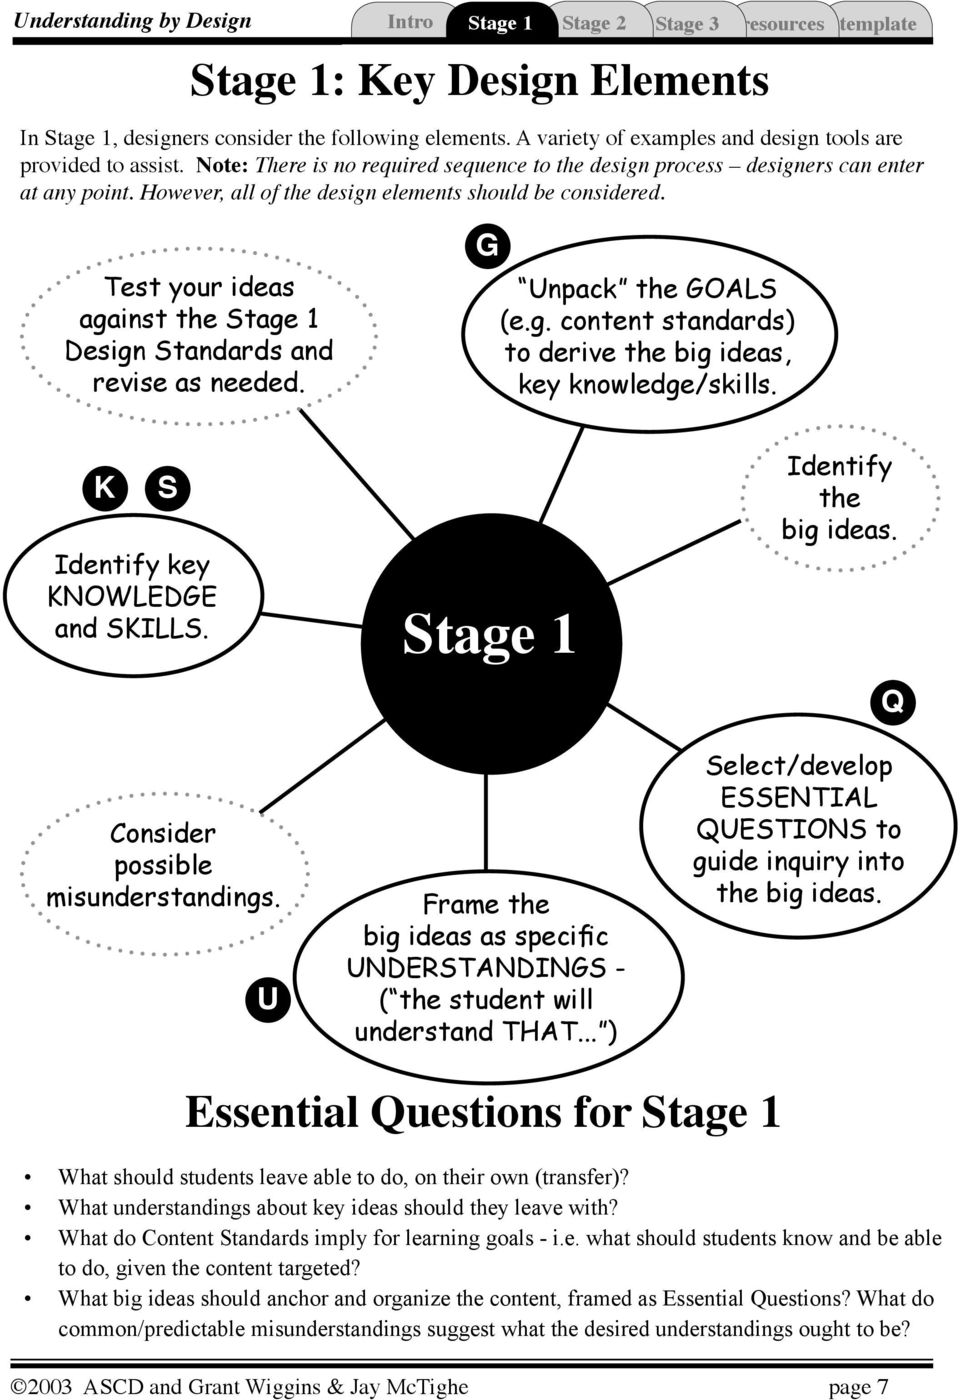 est your ideas against the Stage 1 Design Standards and revise as needed. G npack the GOALS (e.g. content standards) to derive the big ideas, key knowledge/skills.